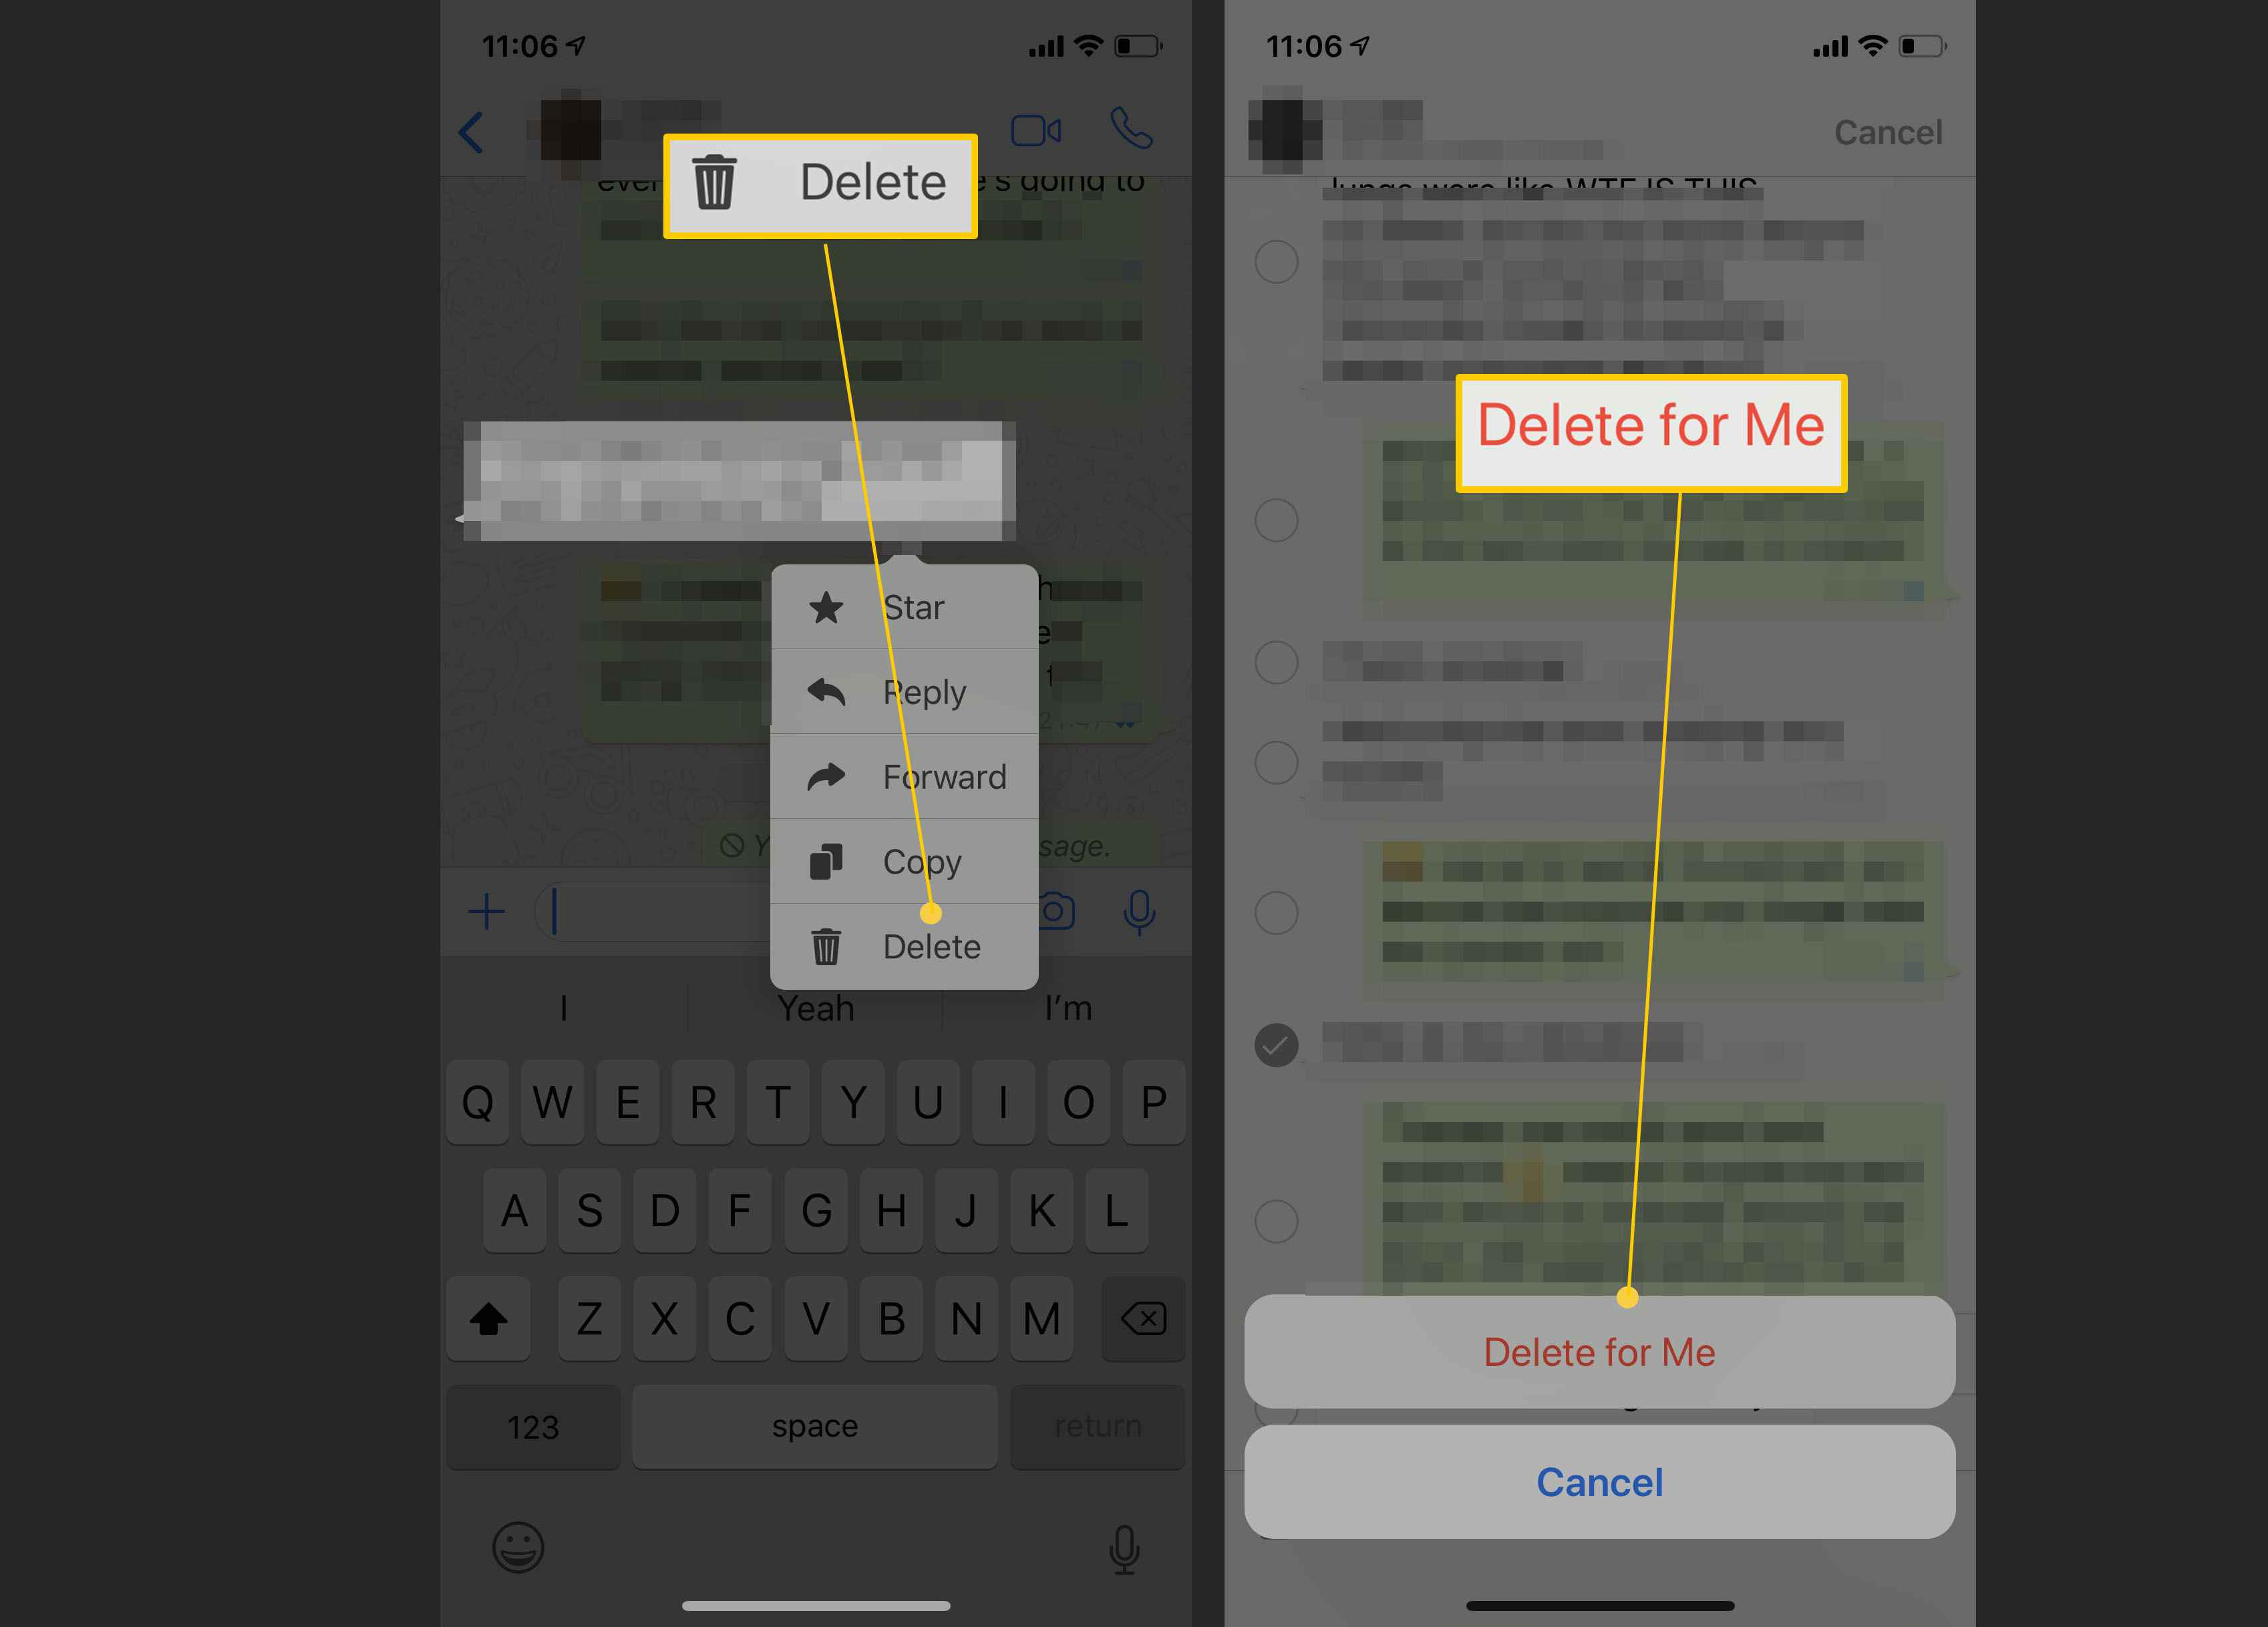 Steps for deleting a received message on WhatsApp